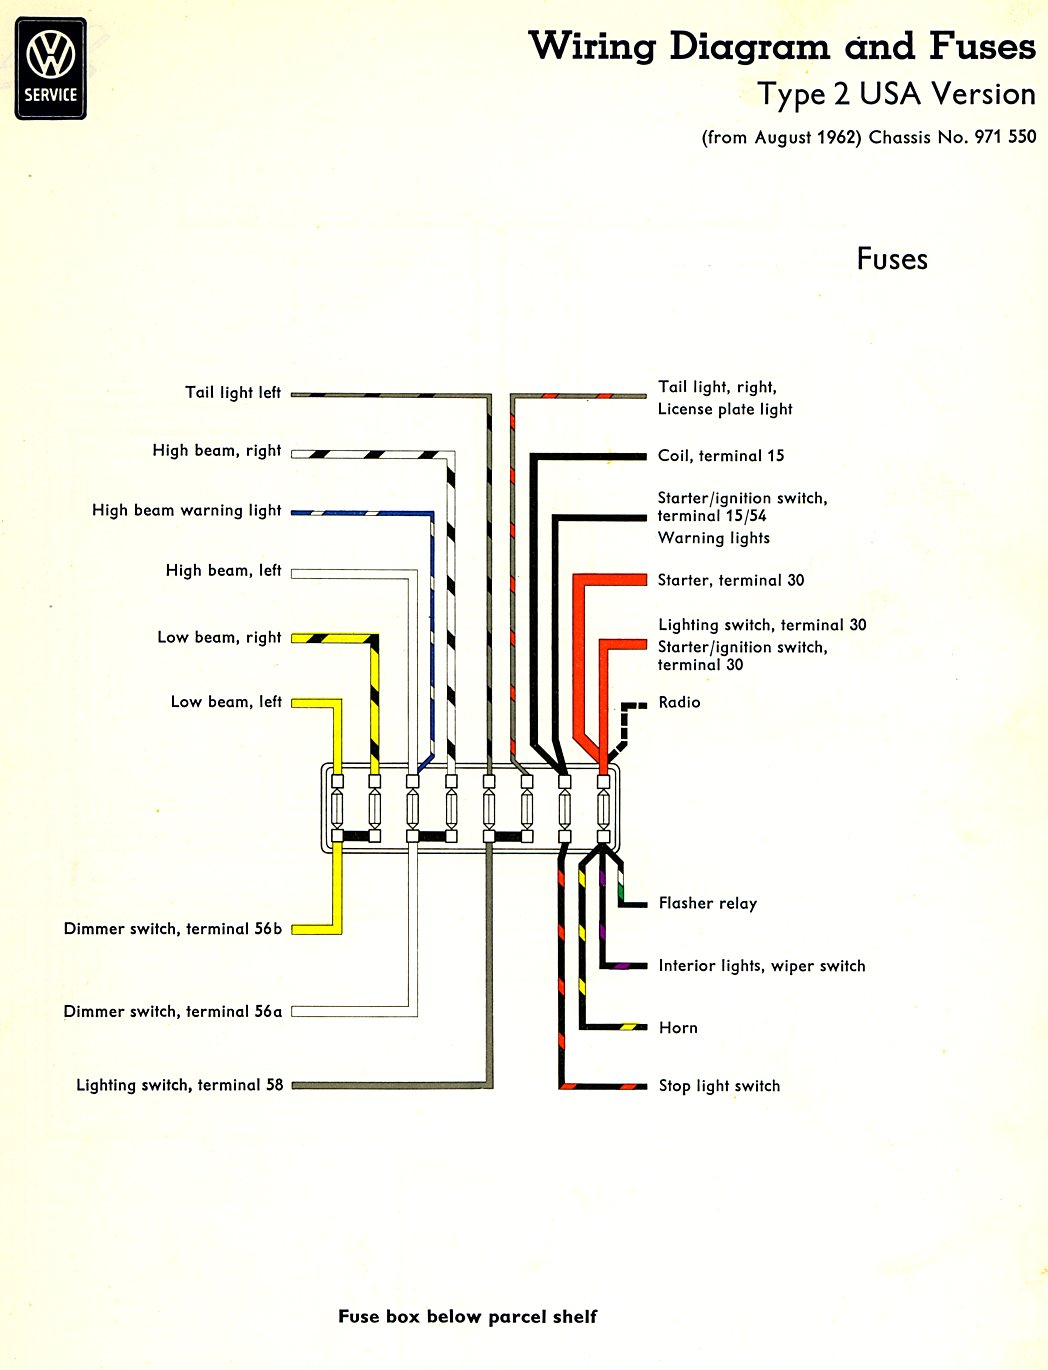 1974 Vw Fuse Box Wiring Just Another Diagram Blog 2000 Volkswagen New Beetle Panel Library Rh 93 Akszer Eu Location